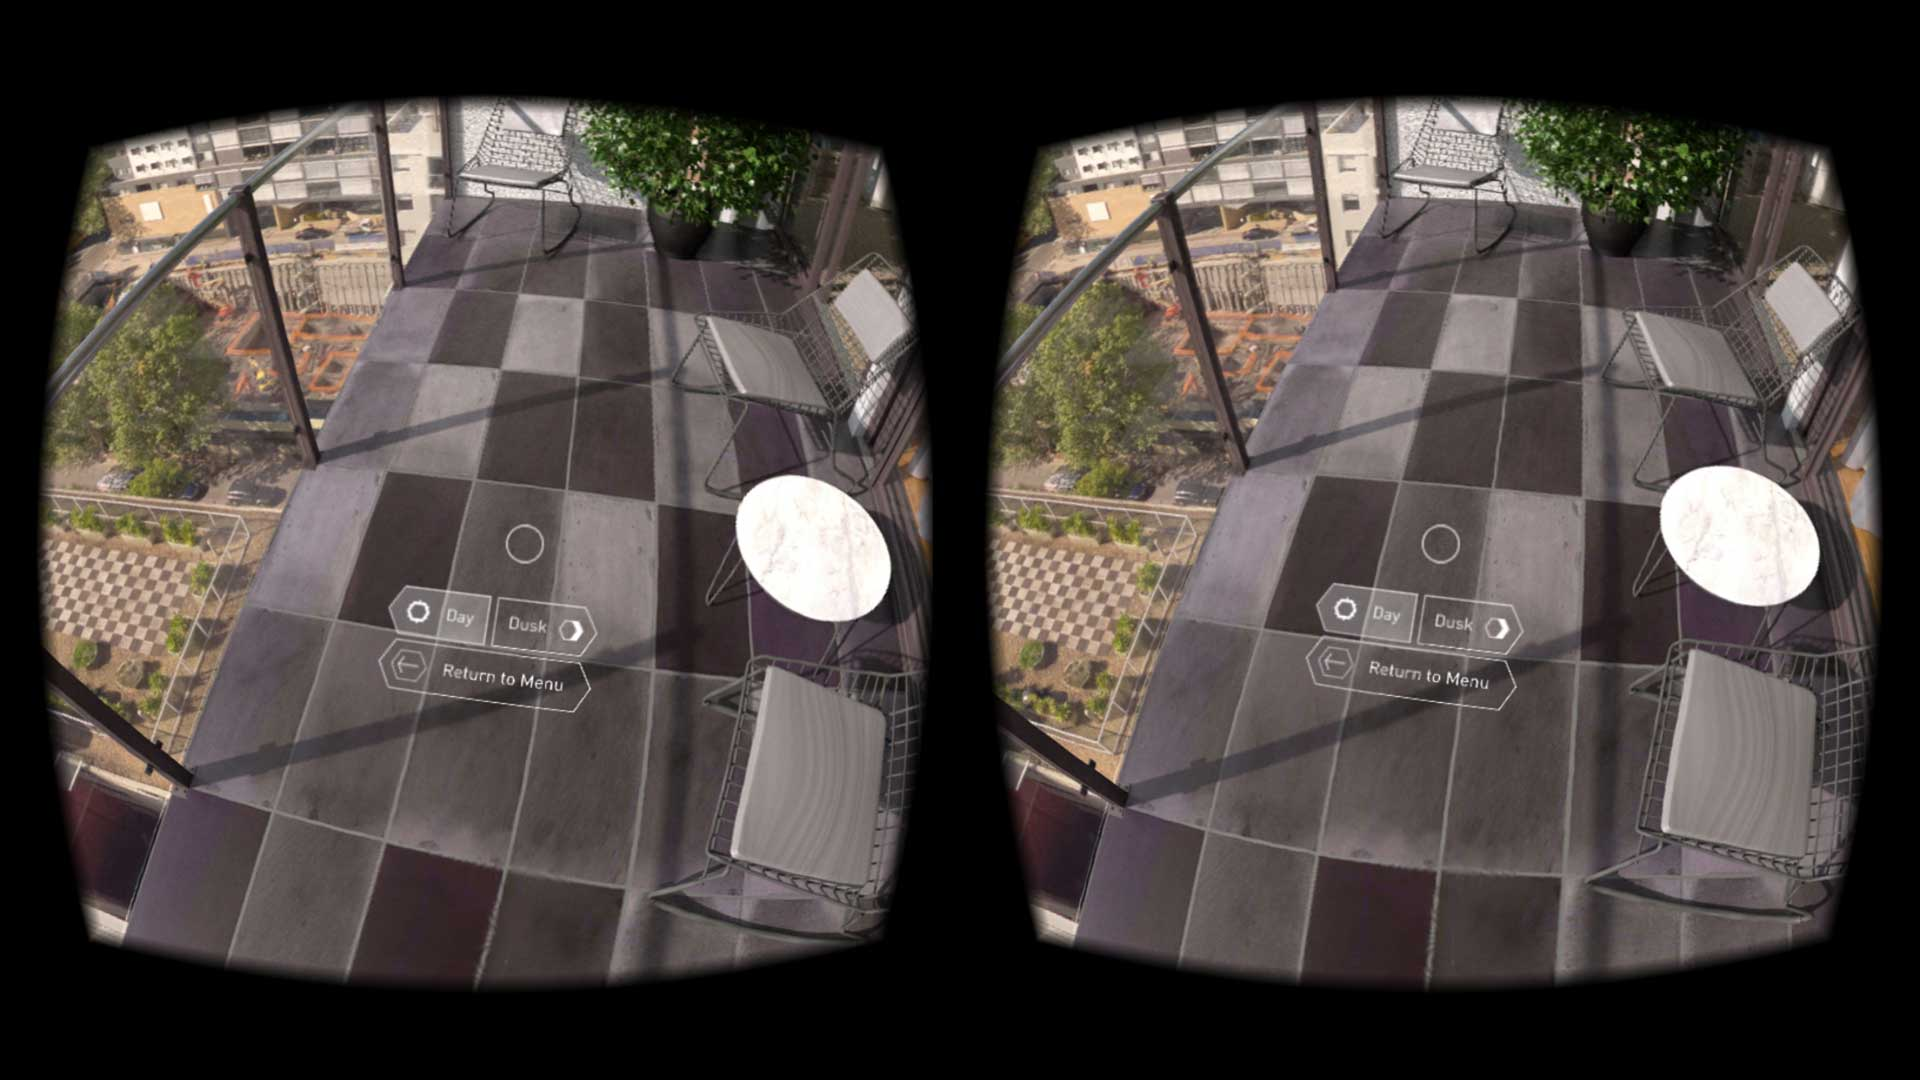 Real Estate VR interface